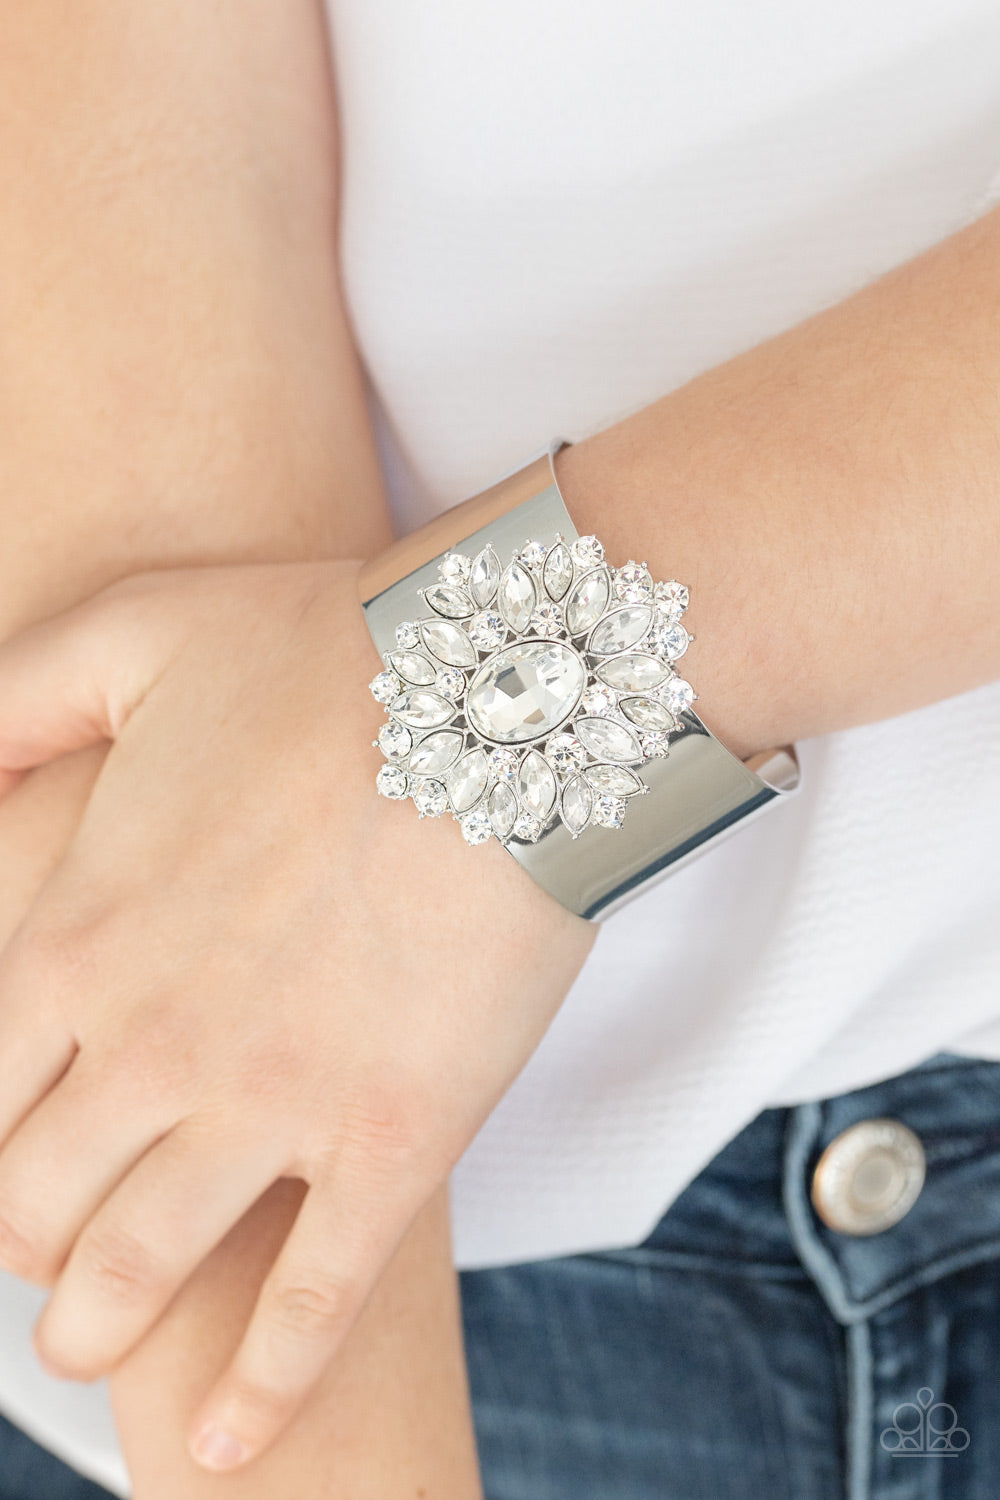 The Fashionmonger - White Paparazzi Bracelet: July 2020 Life of the Party - Pink Dragon Jewels